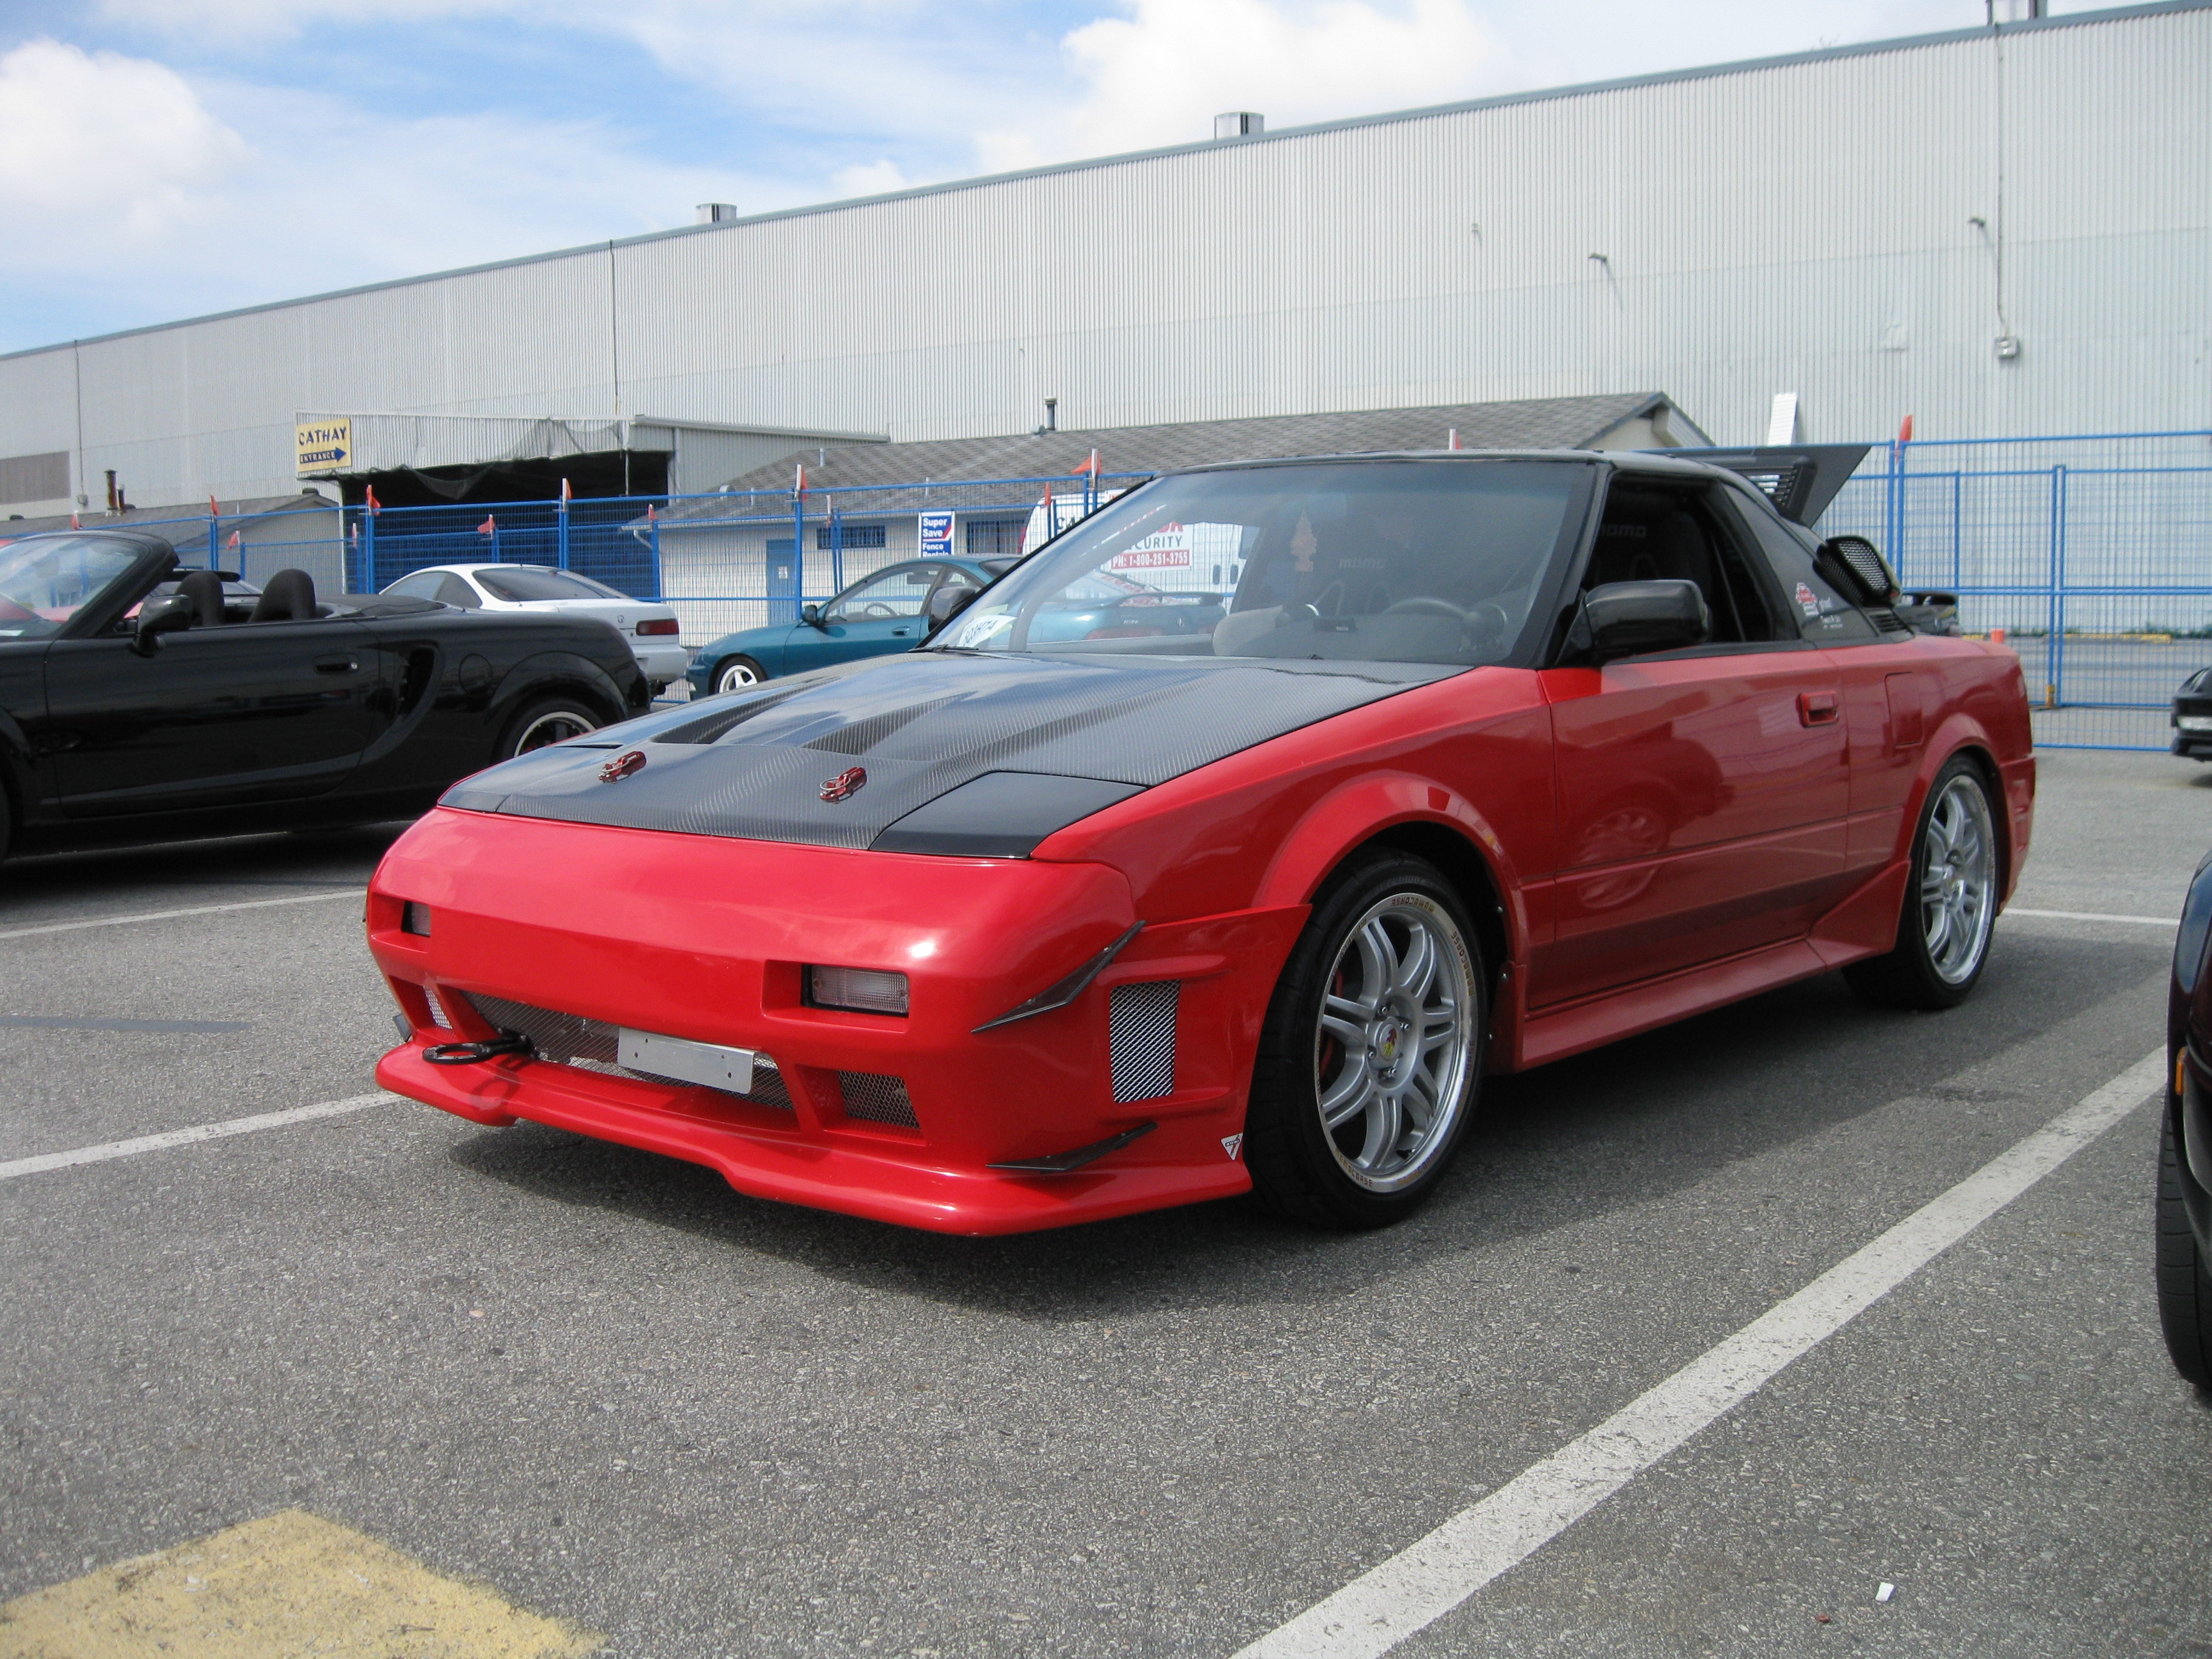 mr2_sc1988 1988 Toyota MR2 11651638